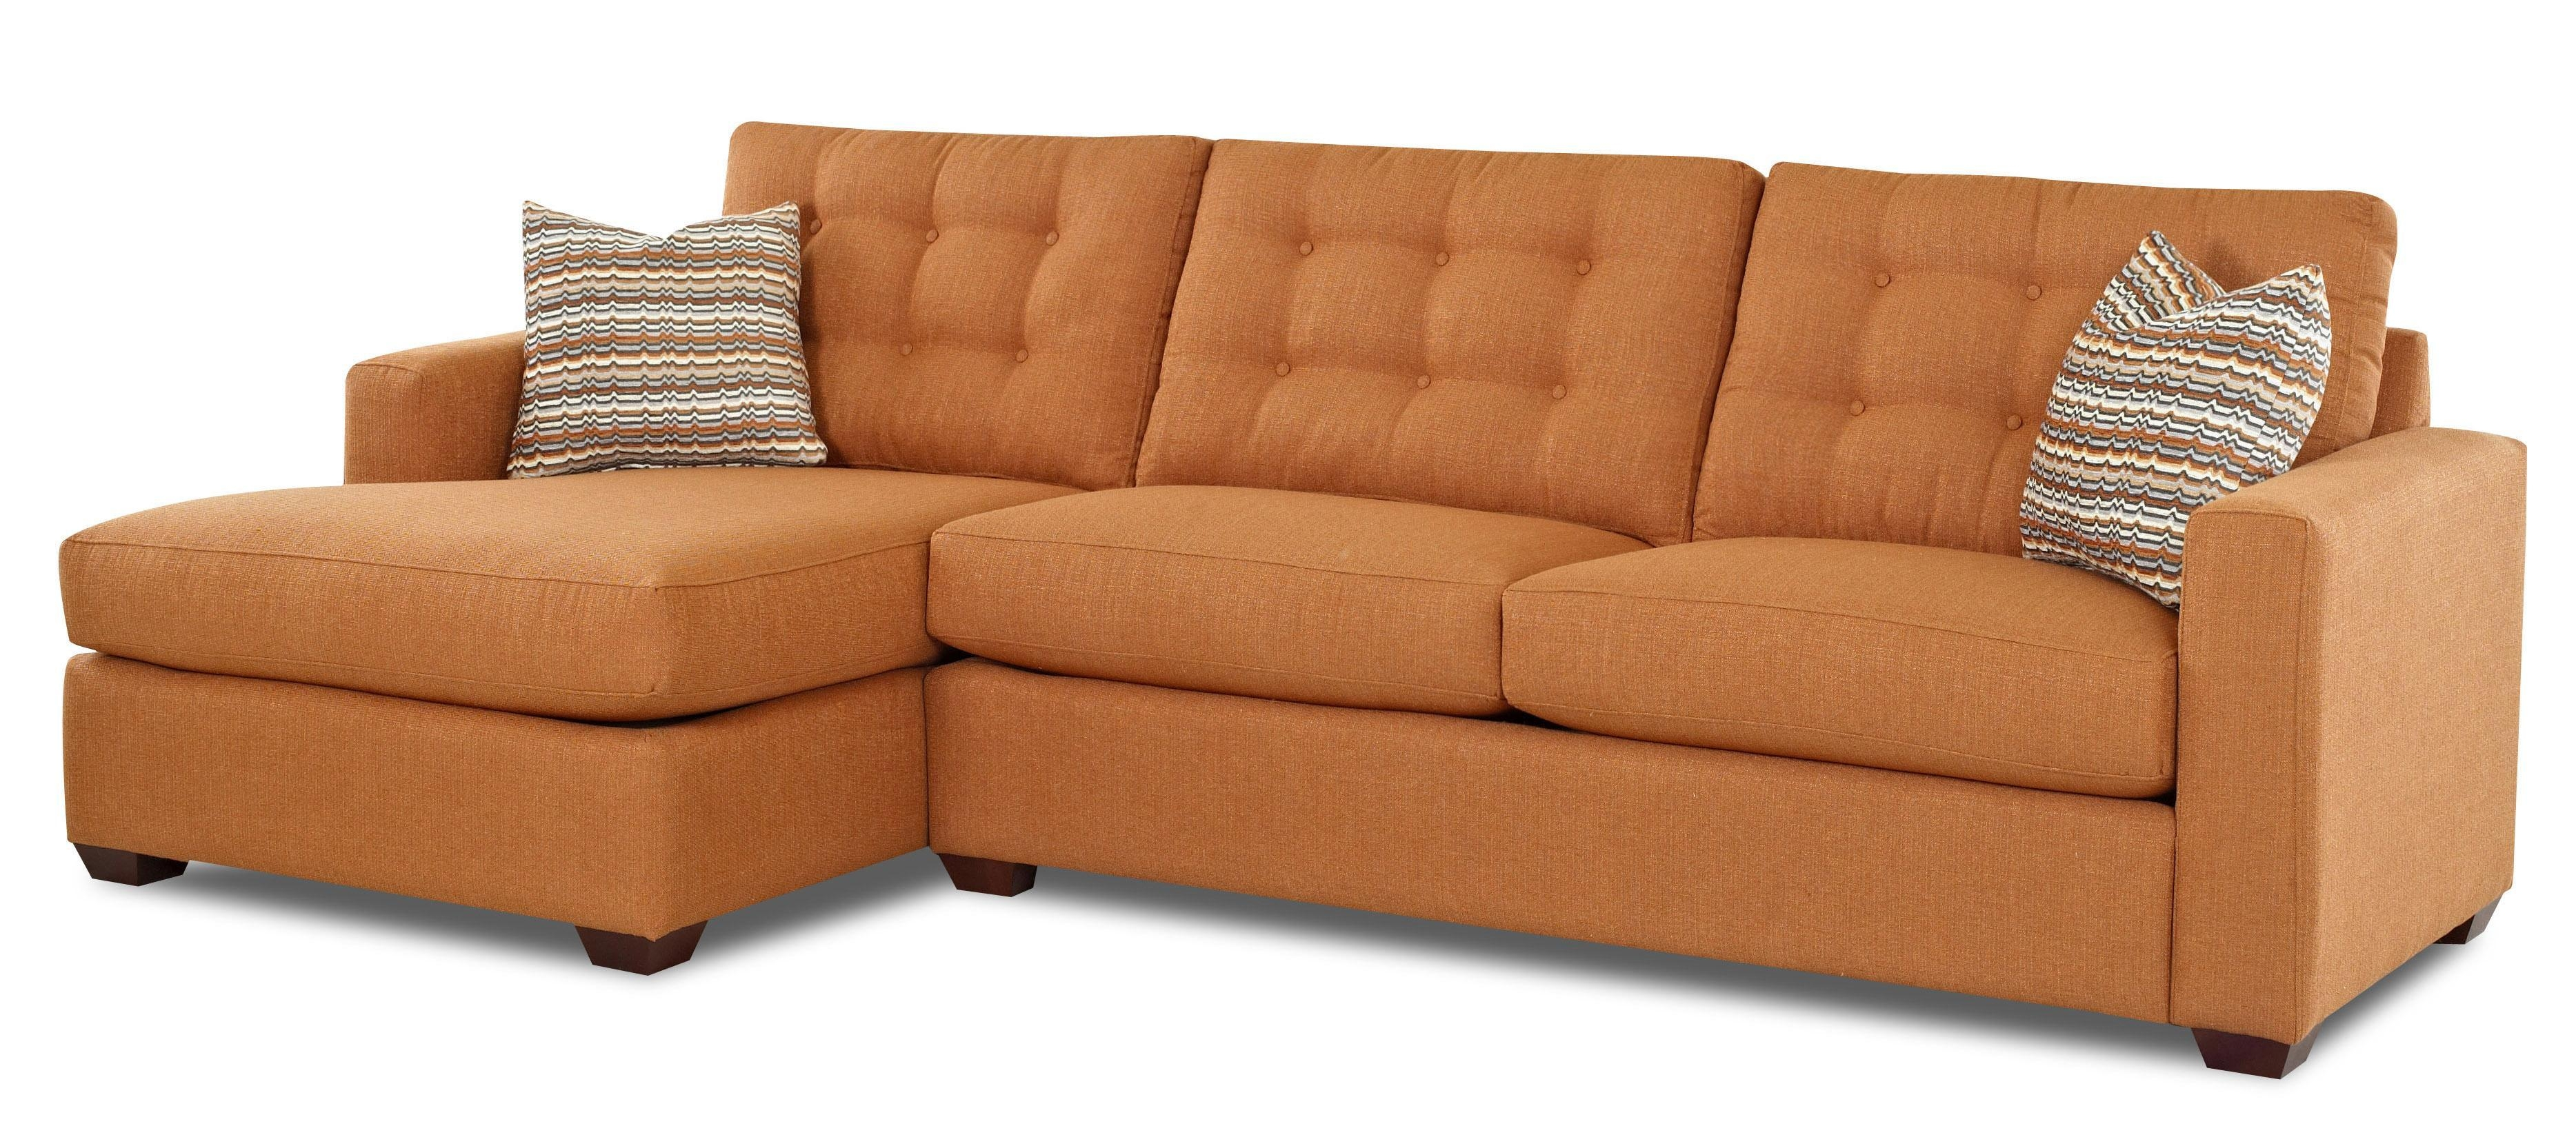 Chaise Lounge Sofa With Recliner Slipcovers Sofas On Sale | Deseosol In Chaise Sofas (View 13 of 20)